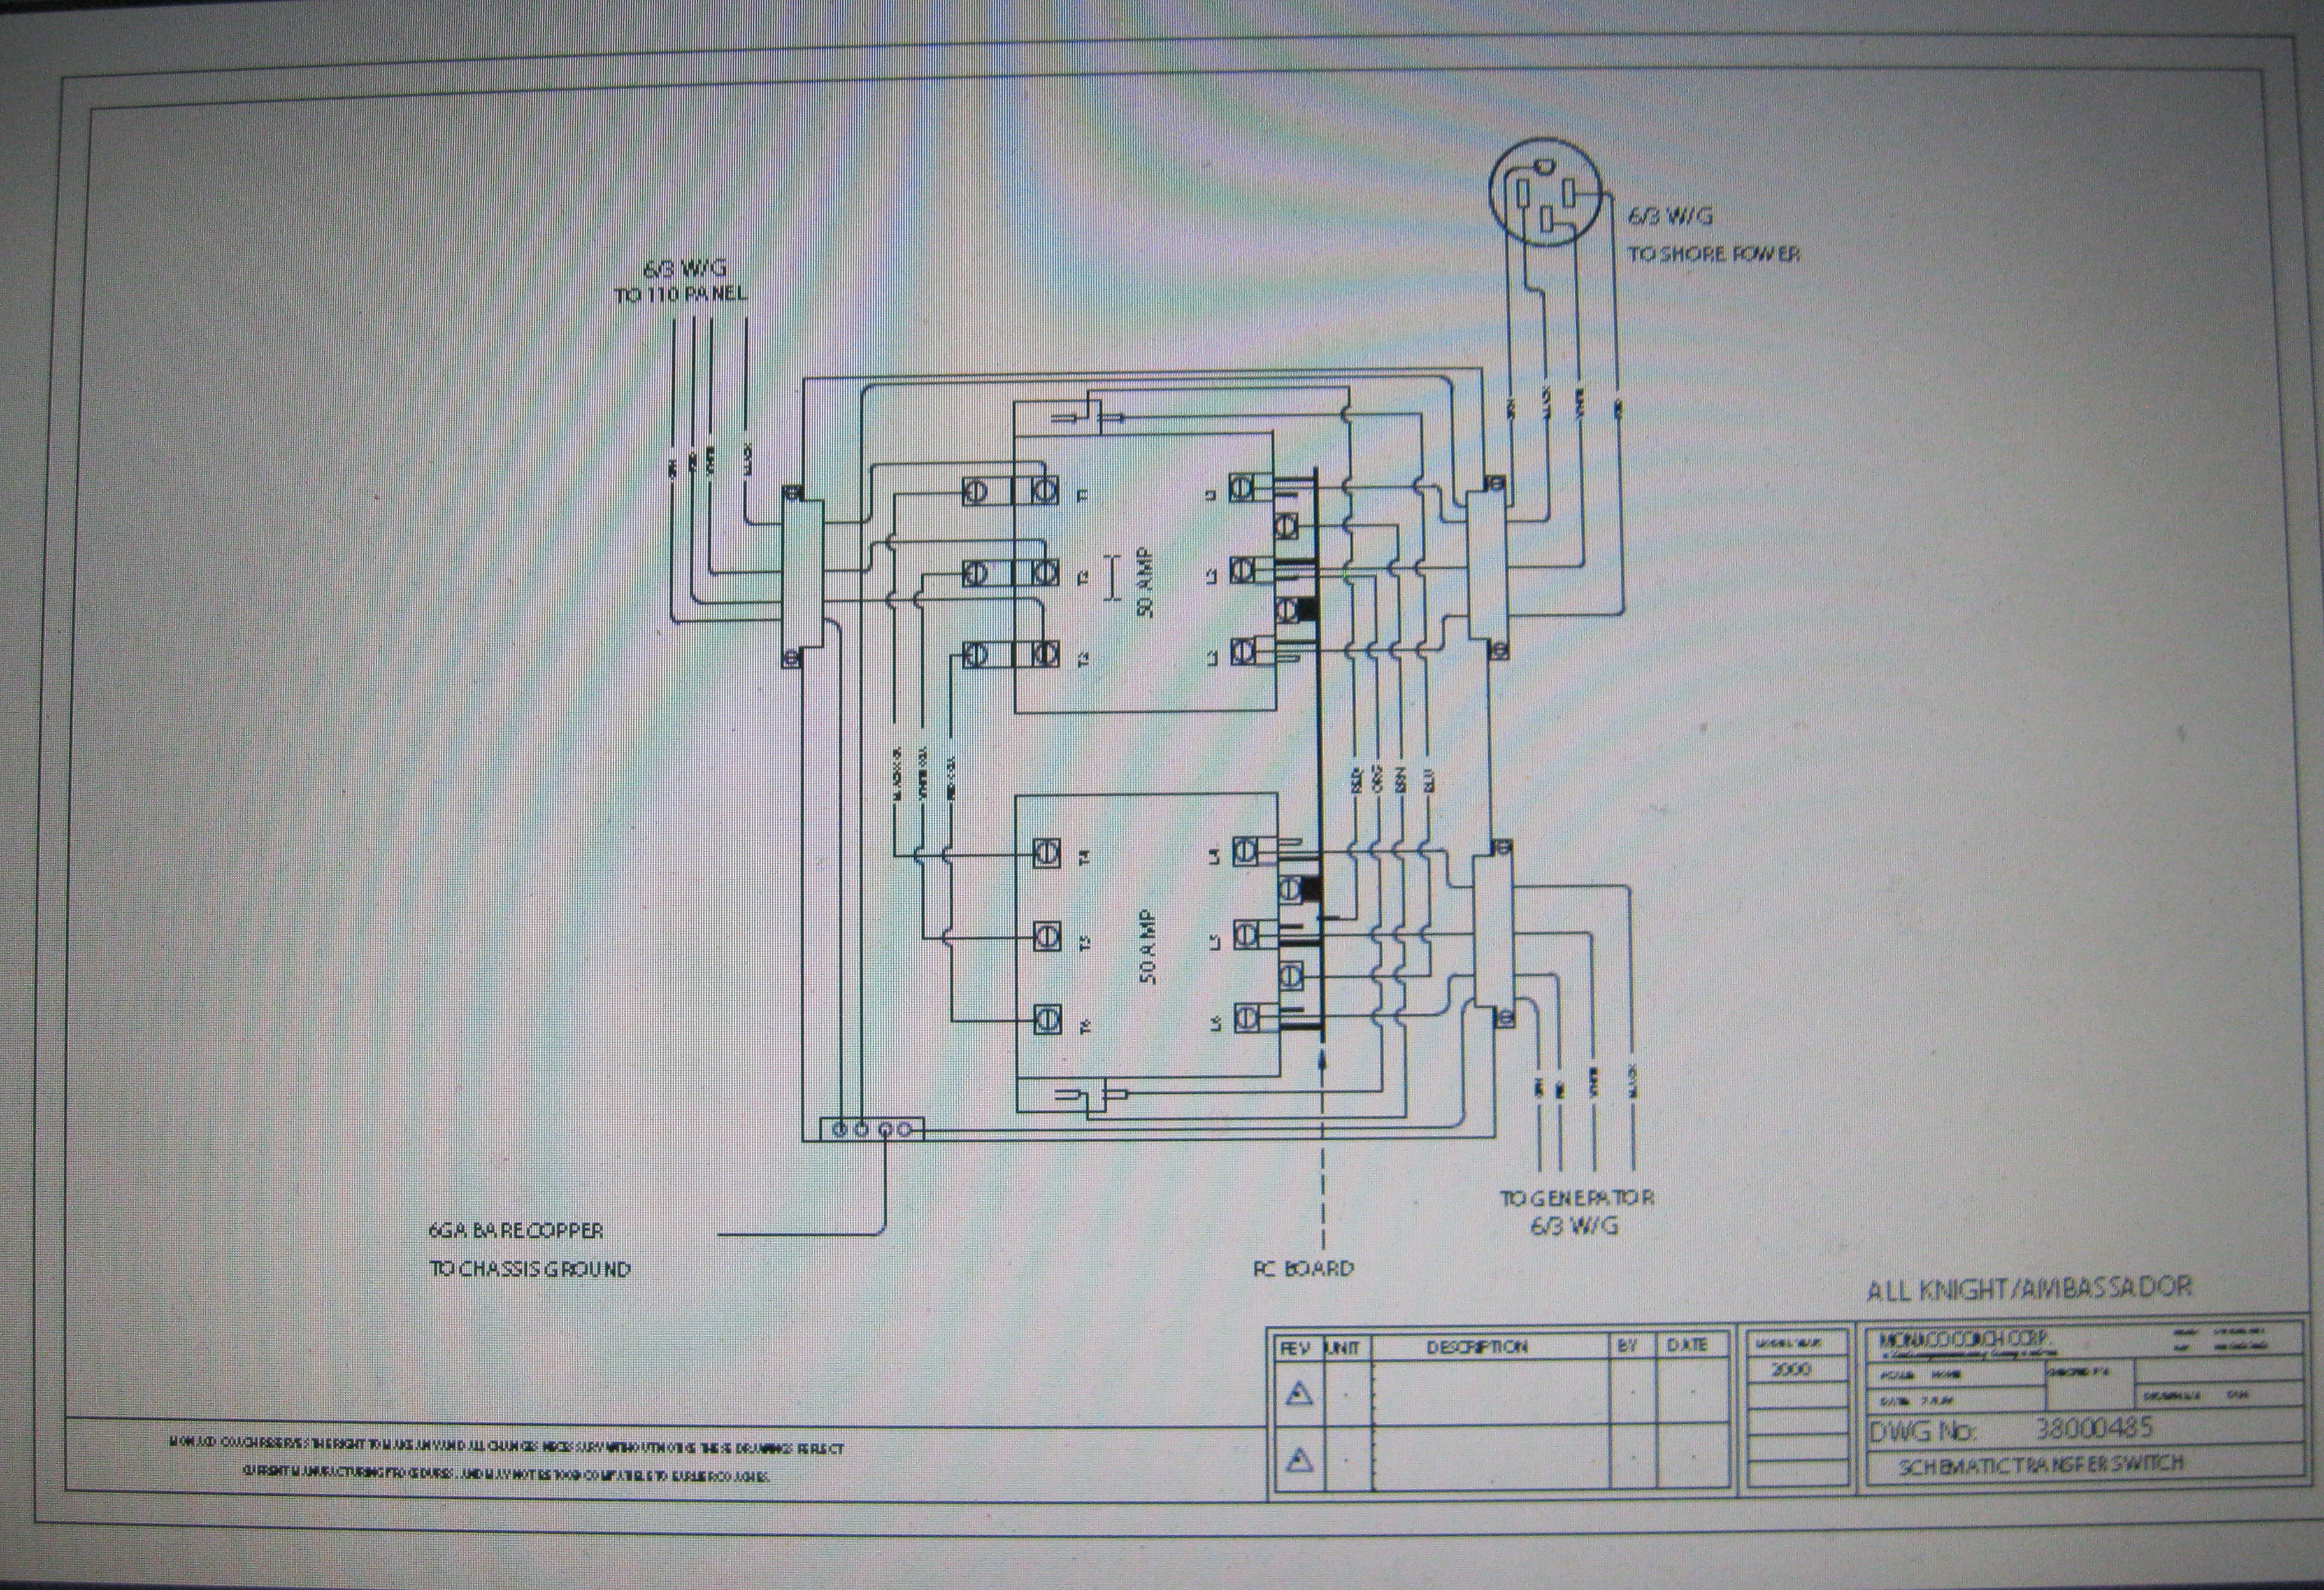 2005 42 Ft Monaco Dynasty Shore Power Cuts In And Out Electrical Rv Wiring Diagram Besides 50 Plug On Amp Typical Ats Setup For S P Gen Panel 120 Feed